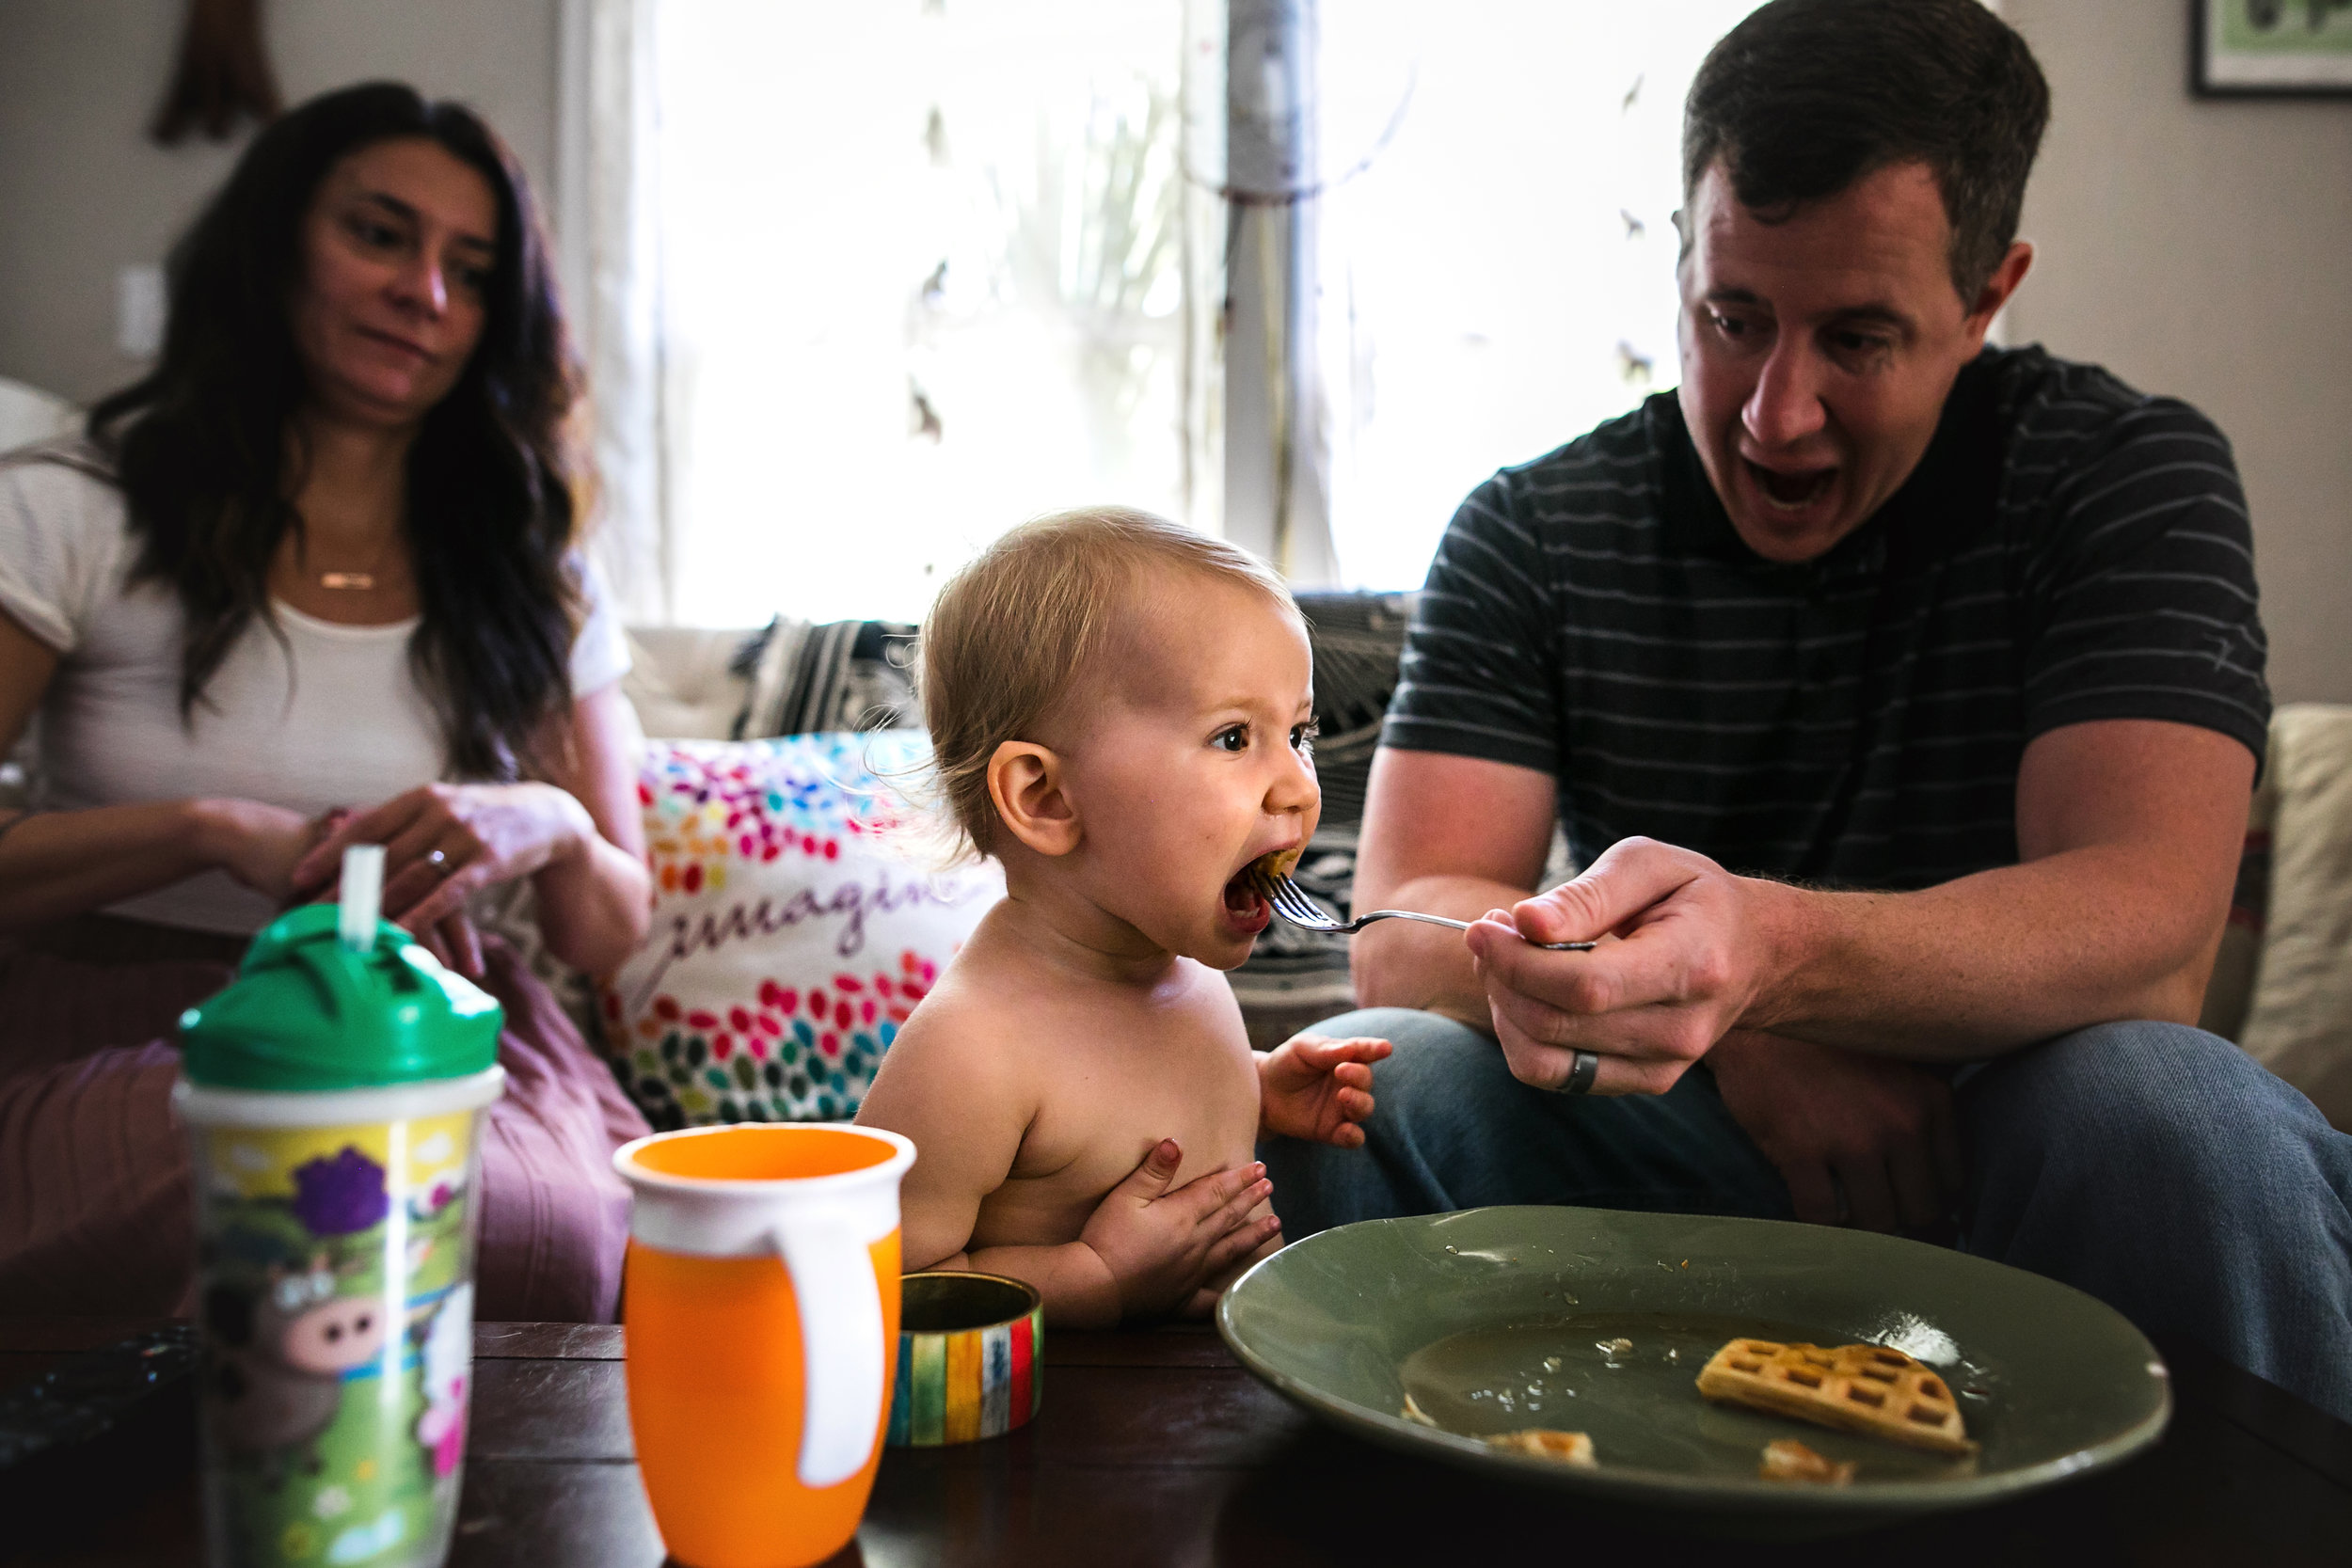 dad feeds baby waffles in the living room-(ZF-0126-04493-1-030).jpg